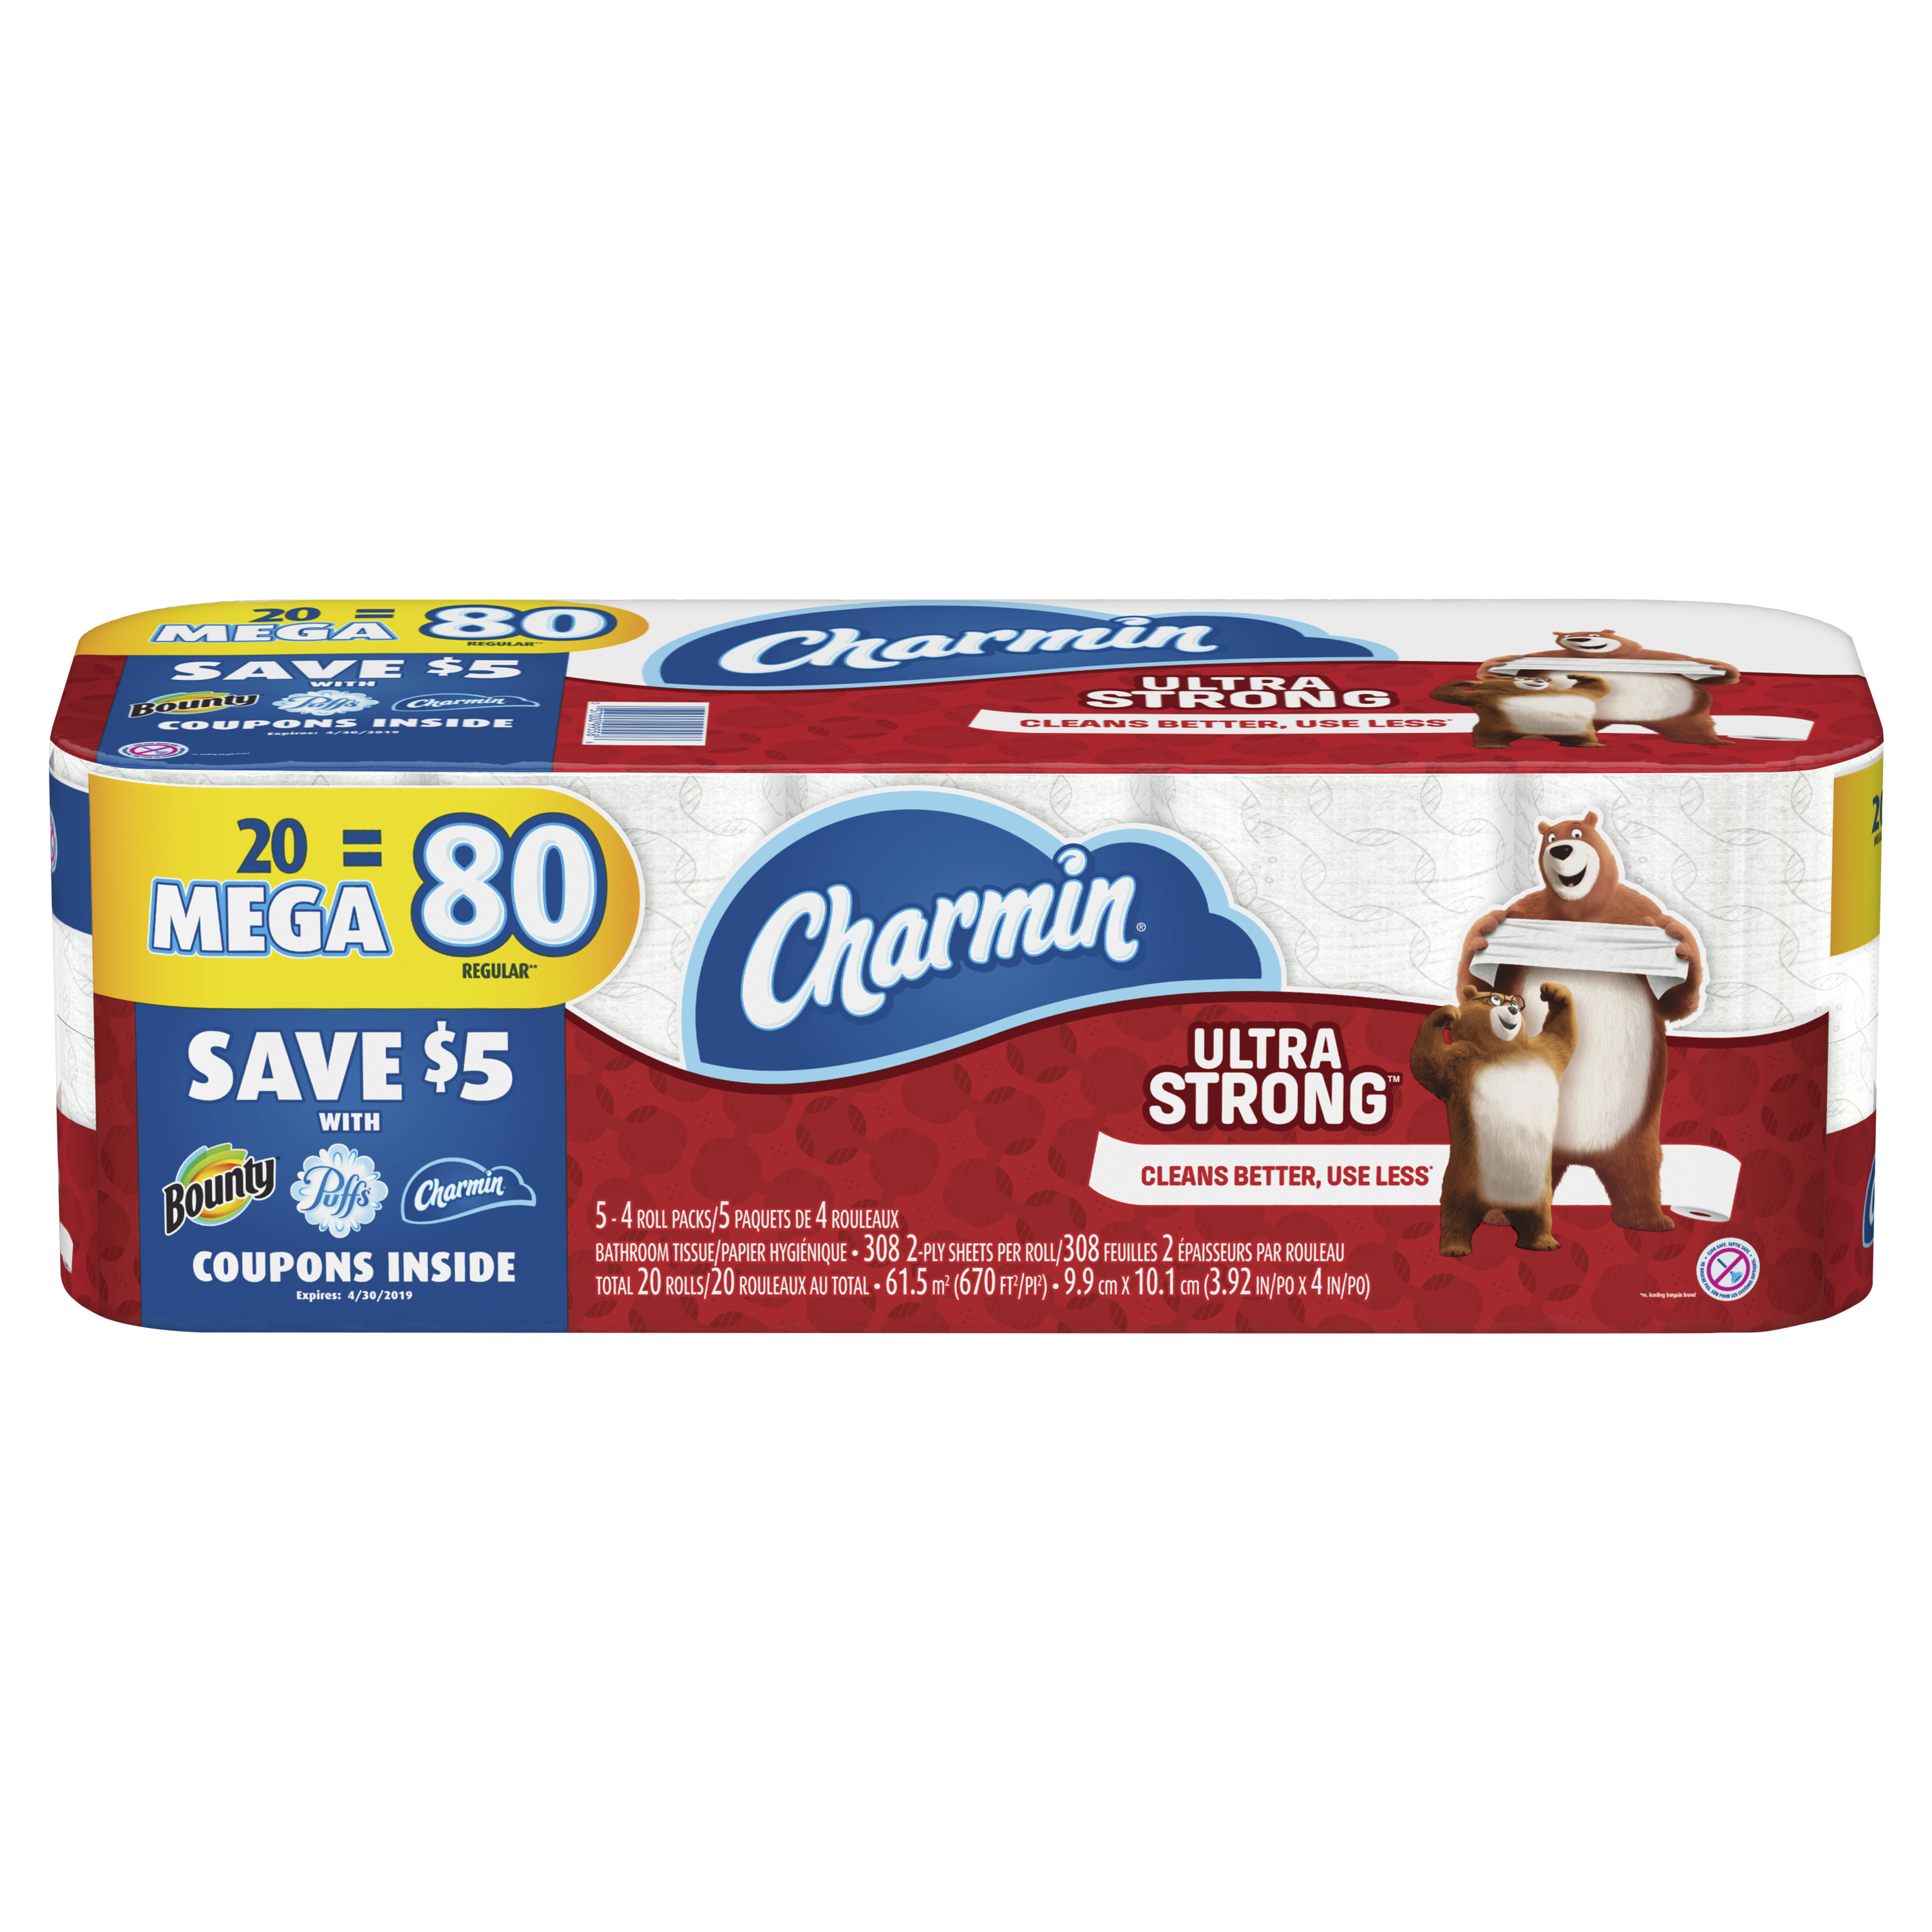 Charmin Ultra Strong Toilet Paper, 20 Mega Rolls